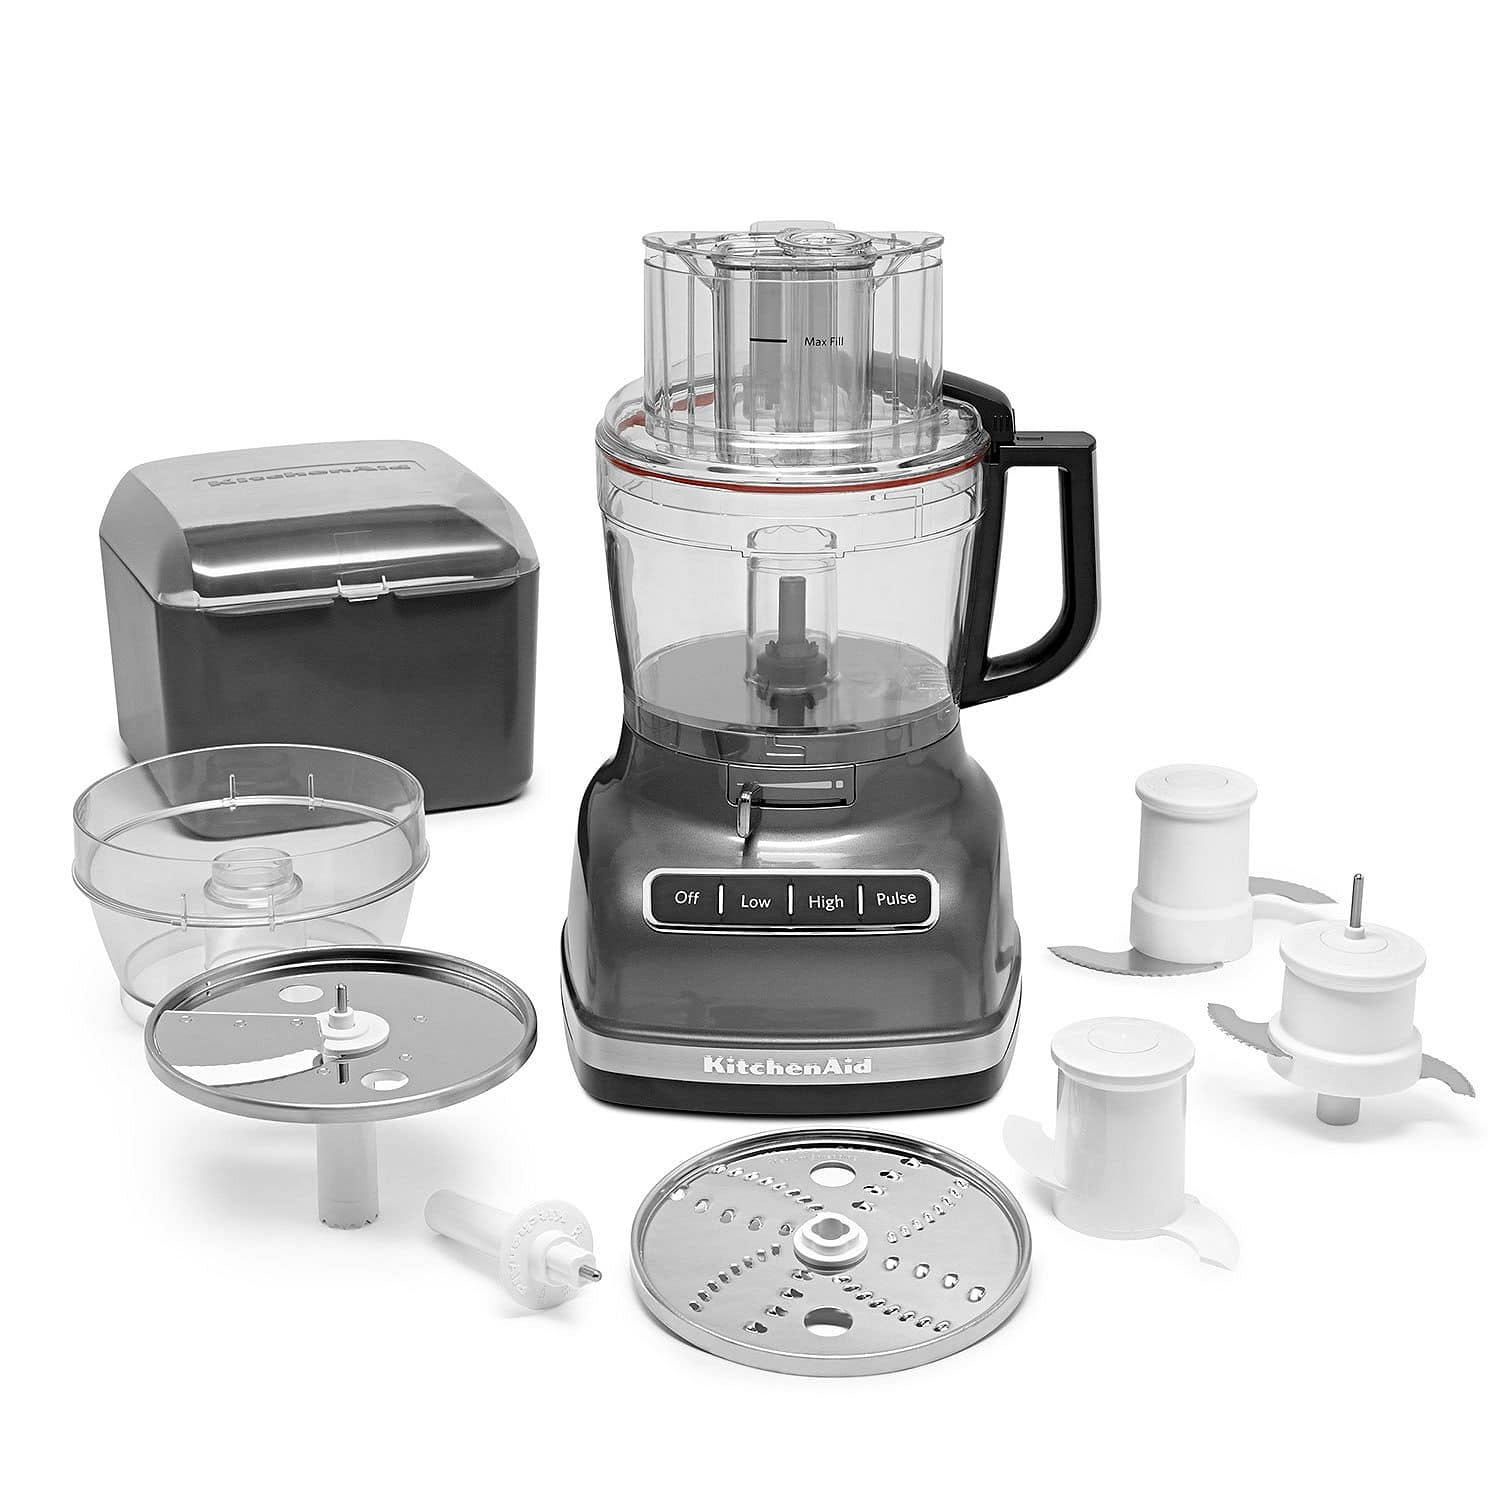 KitchenAid 11-Cup Food Processor with ExactSlice $100